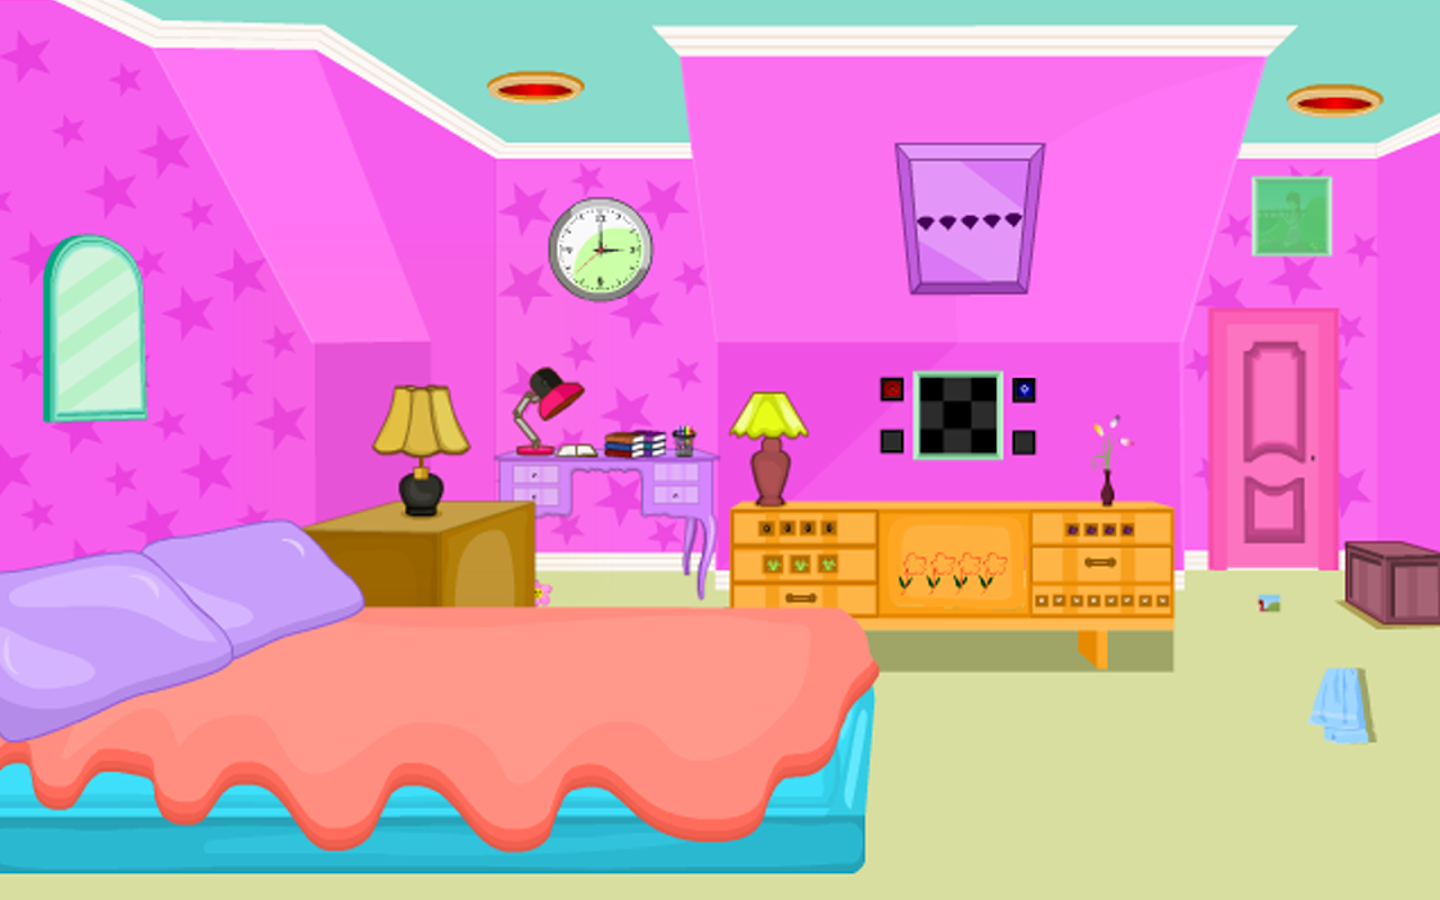 Pink Foyer Room Escape : Escape games puzzle rooms android apps on google play